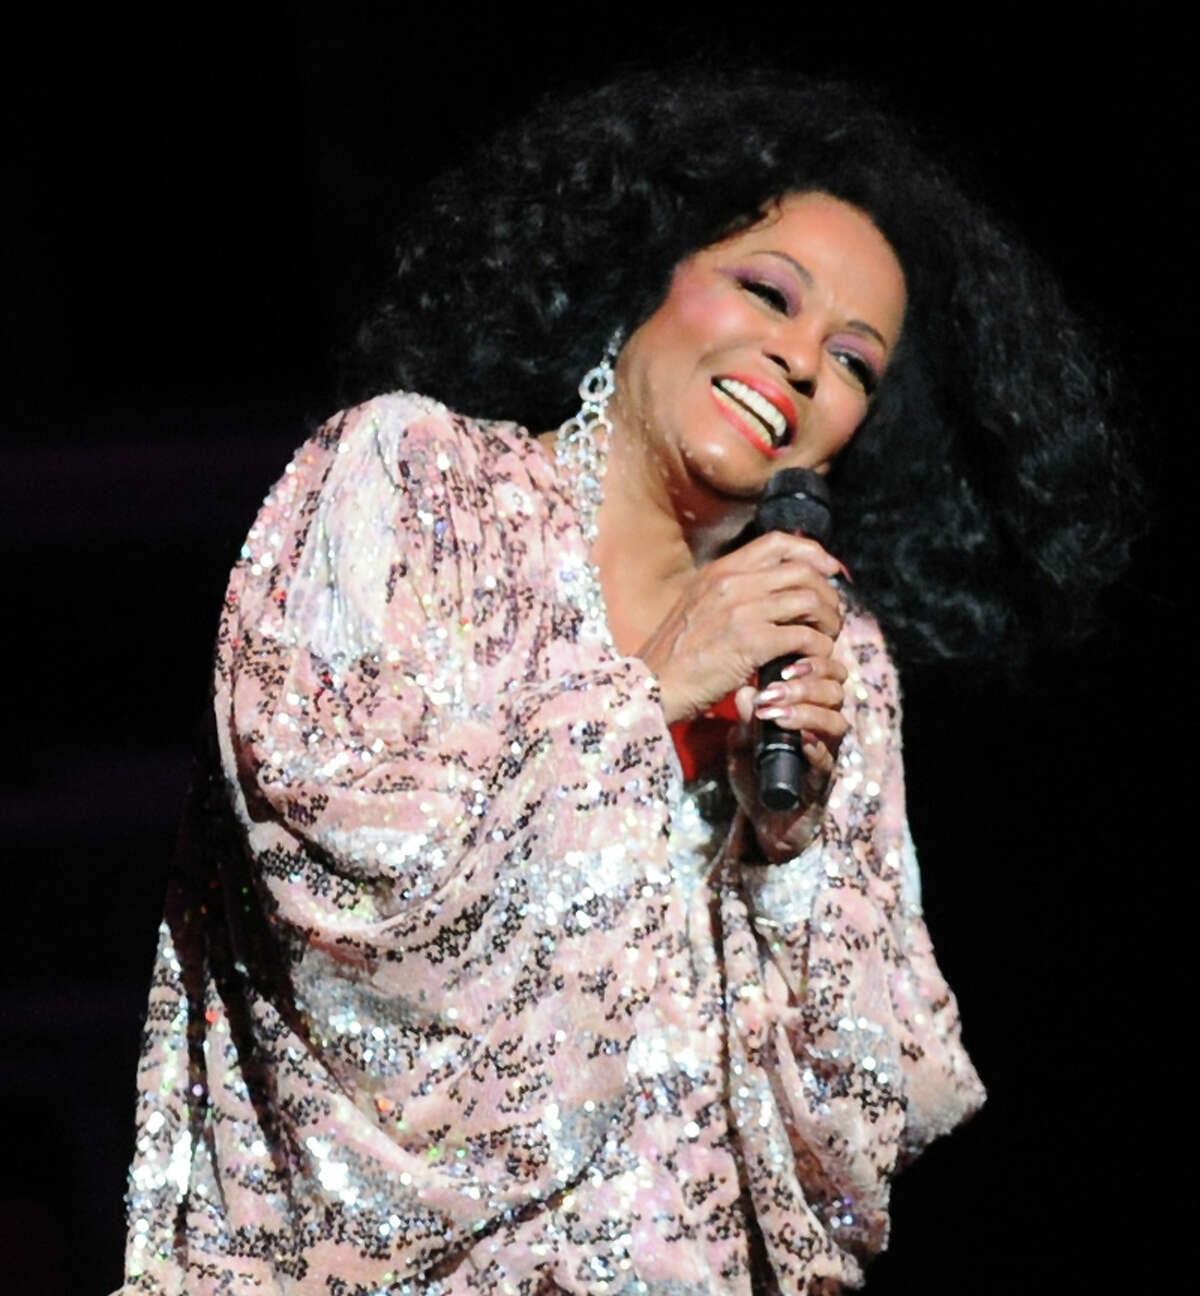 Diana Ross performs at the Palace Theater in Stamford, Saturday night, August 17, 2013.